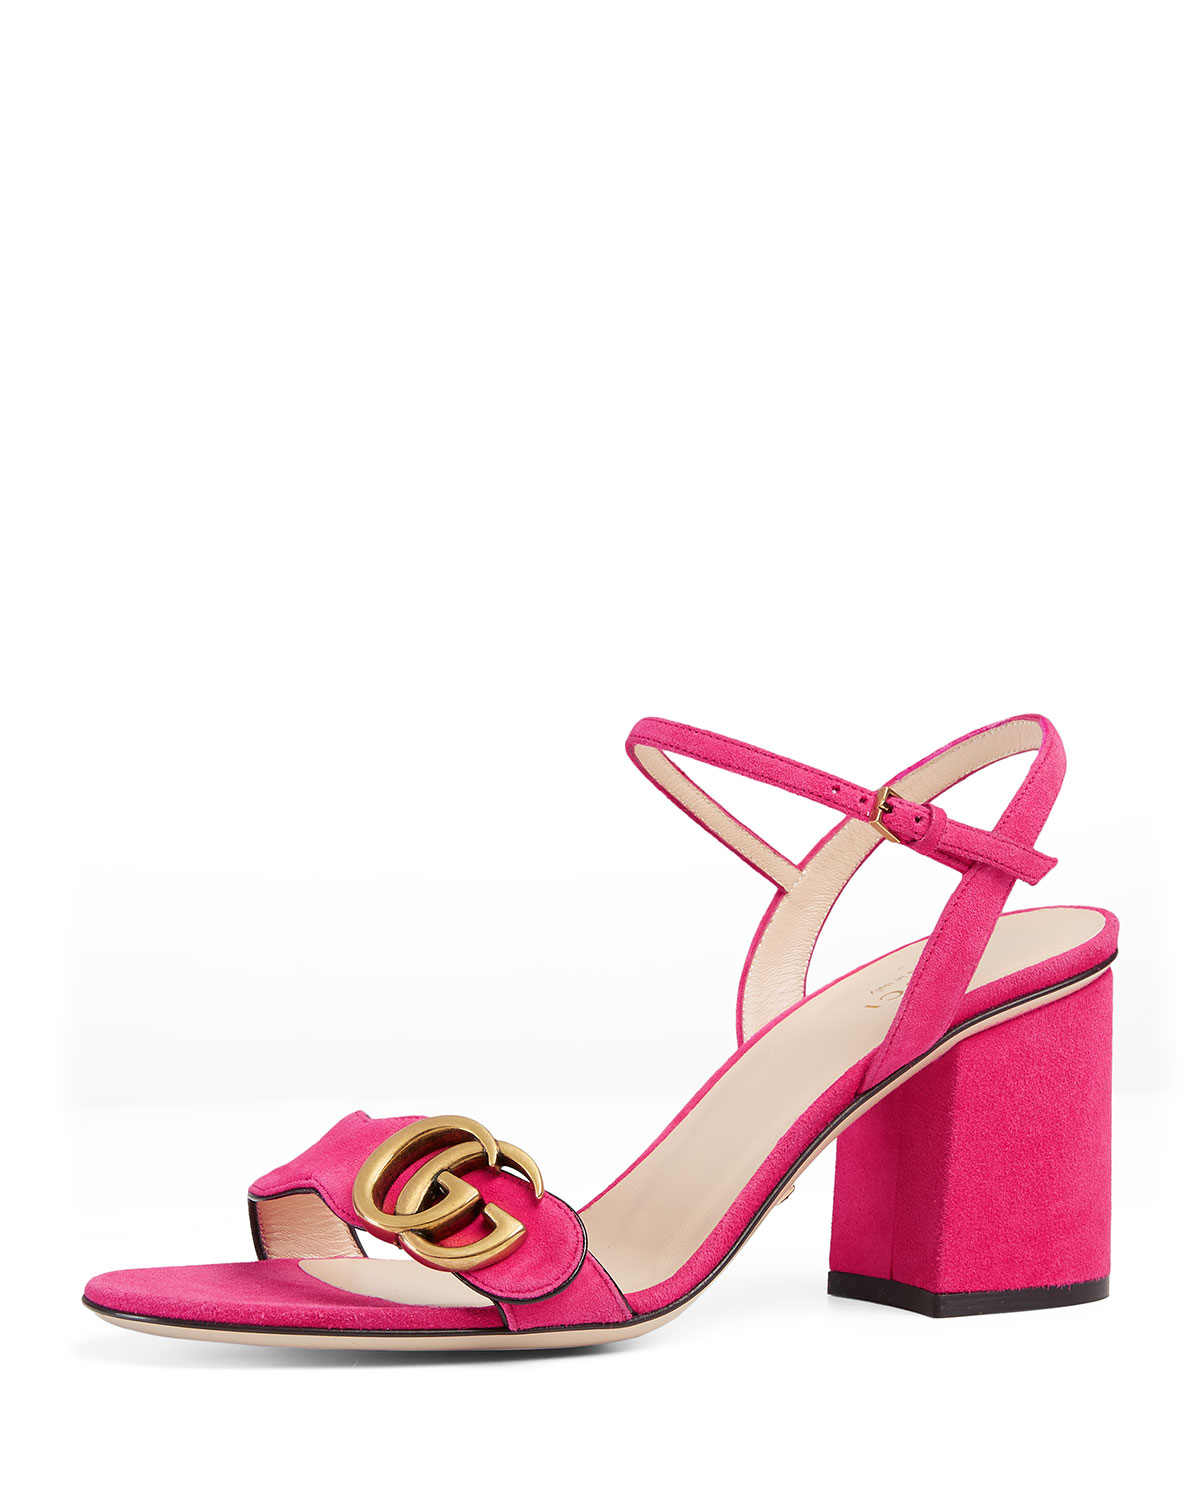 9a0ac0a71f5 Gucci Marmont 75mm Ankle Strap Sandal